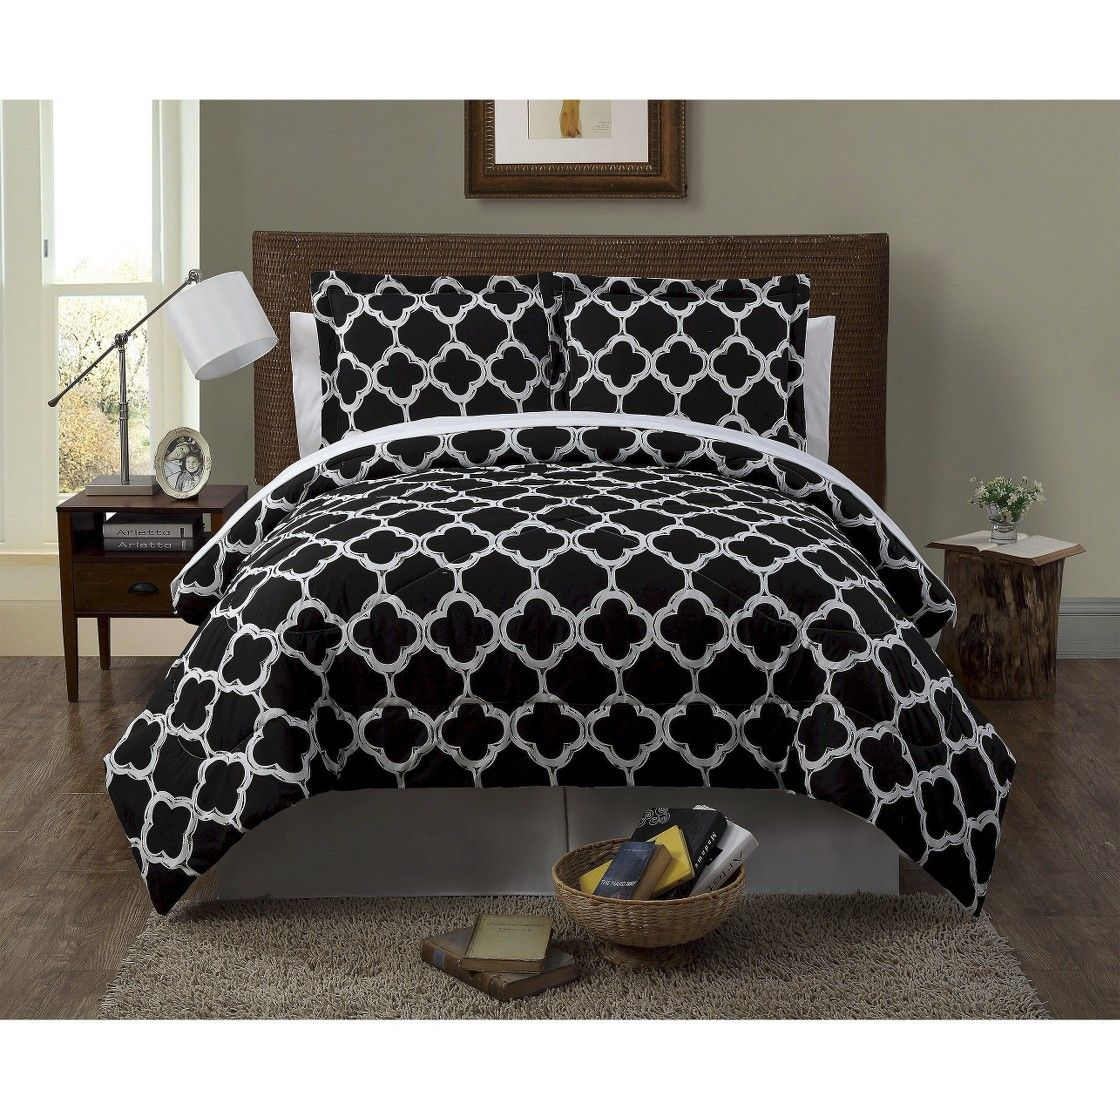 Galaxy 8 Piece Bed In A Bag With Sheet Set Home Pinterest Room